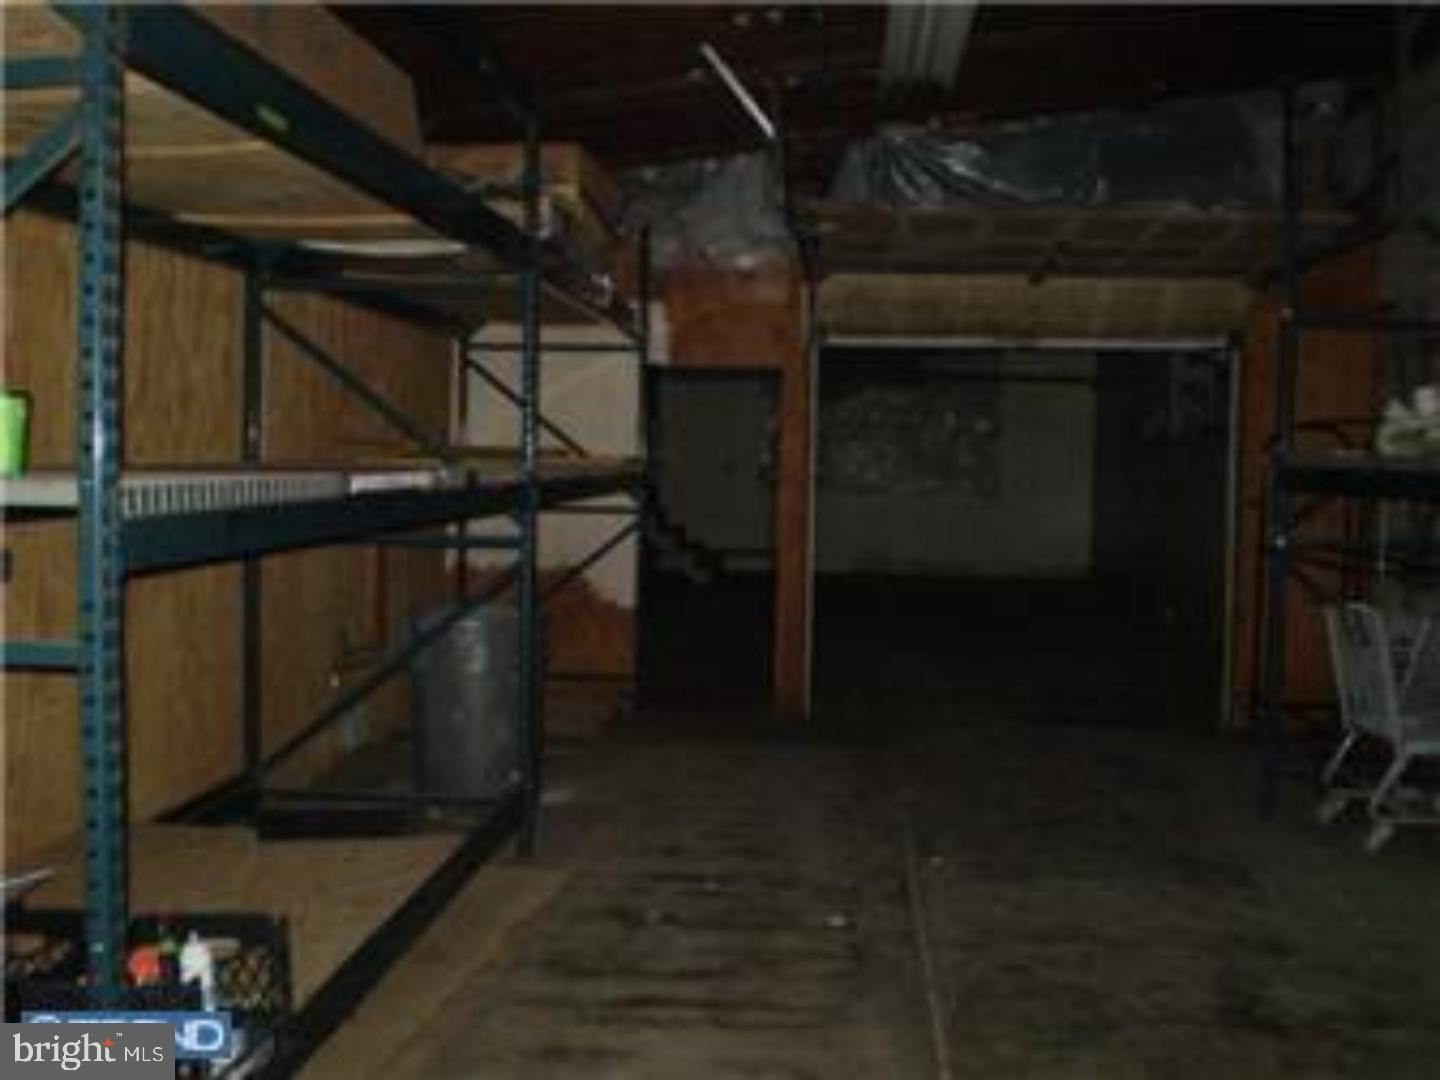 Property Image Of 66 Reeger Ave In Hamilton, Nj